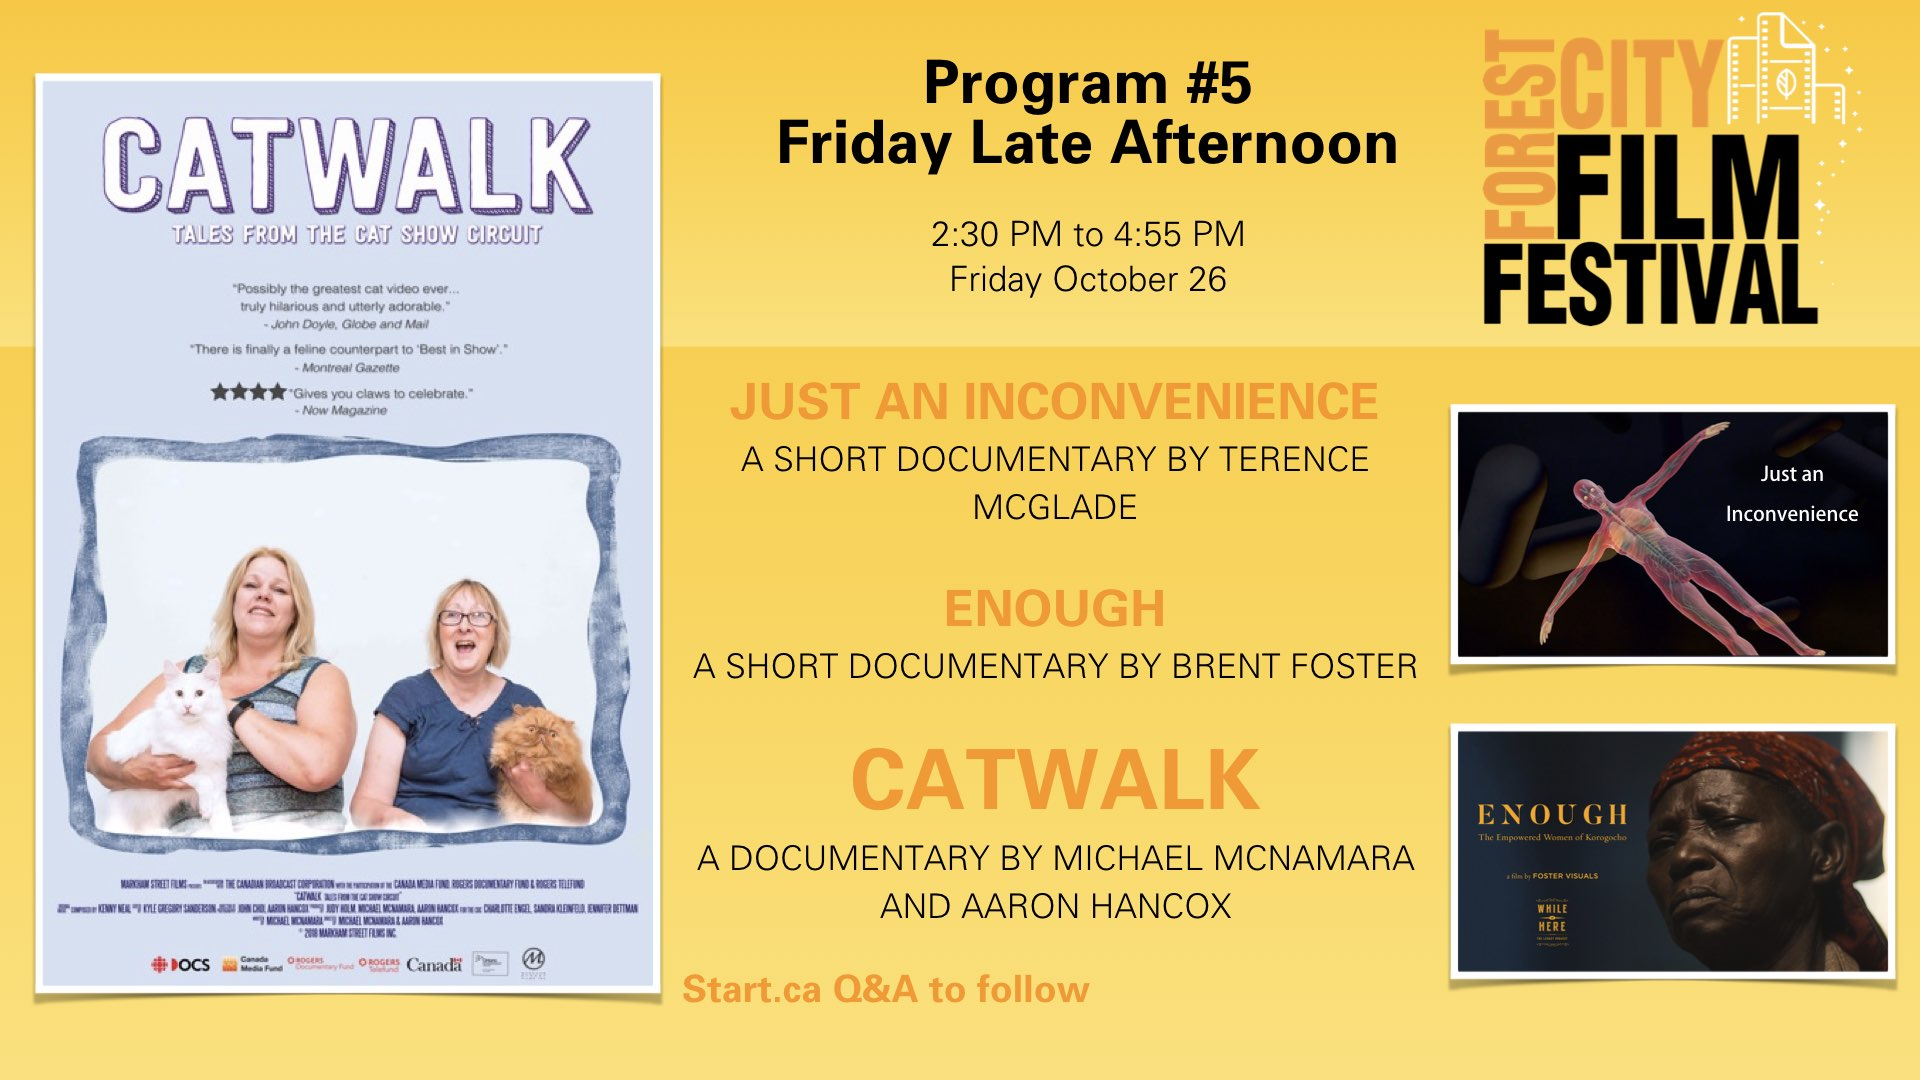 Forest City Film Festival 2018 - Friday Afternoon - Program #5